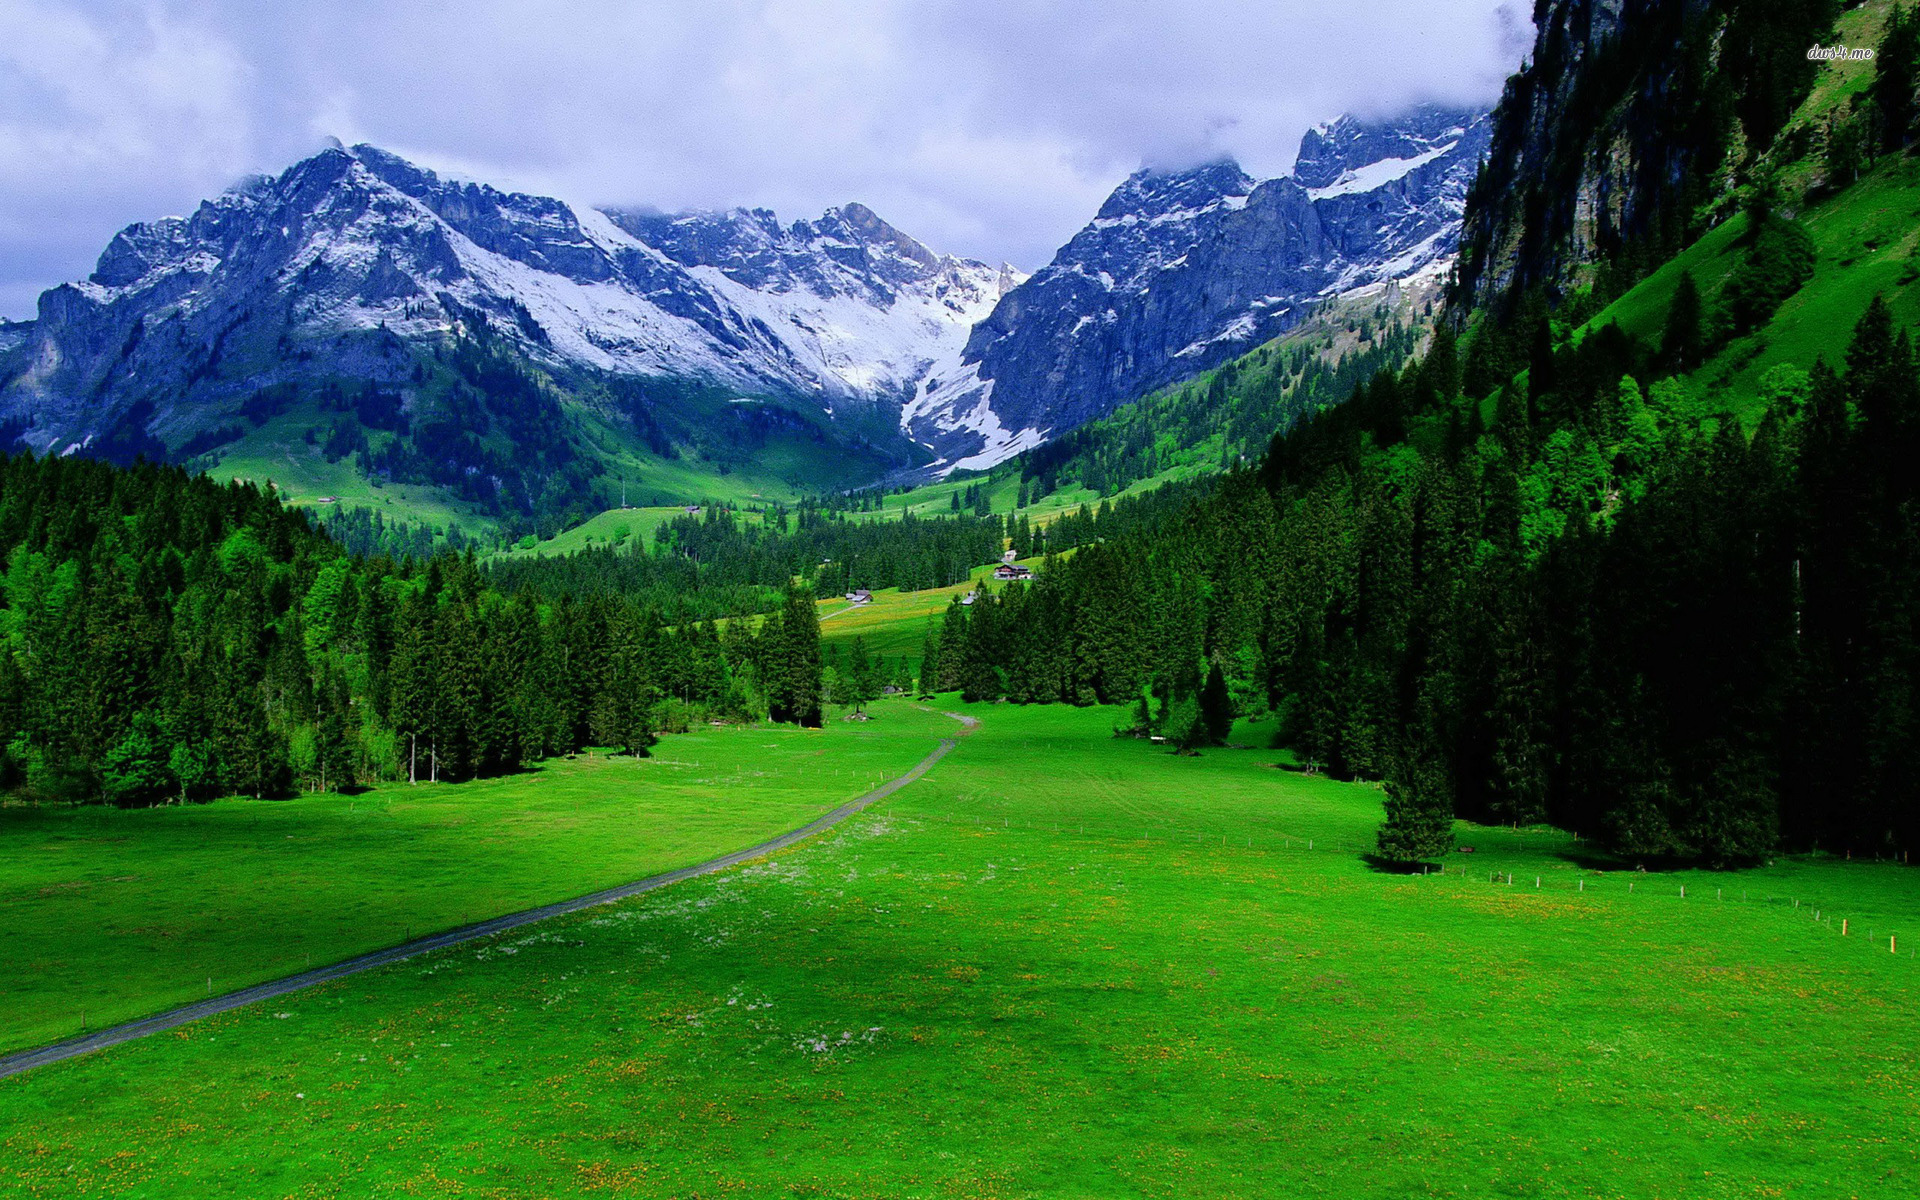 switzerland nature beauty hd wallpaper | truly hand picked